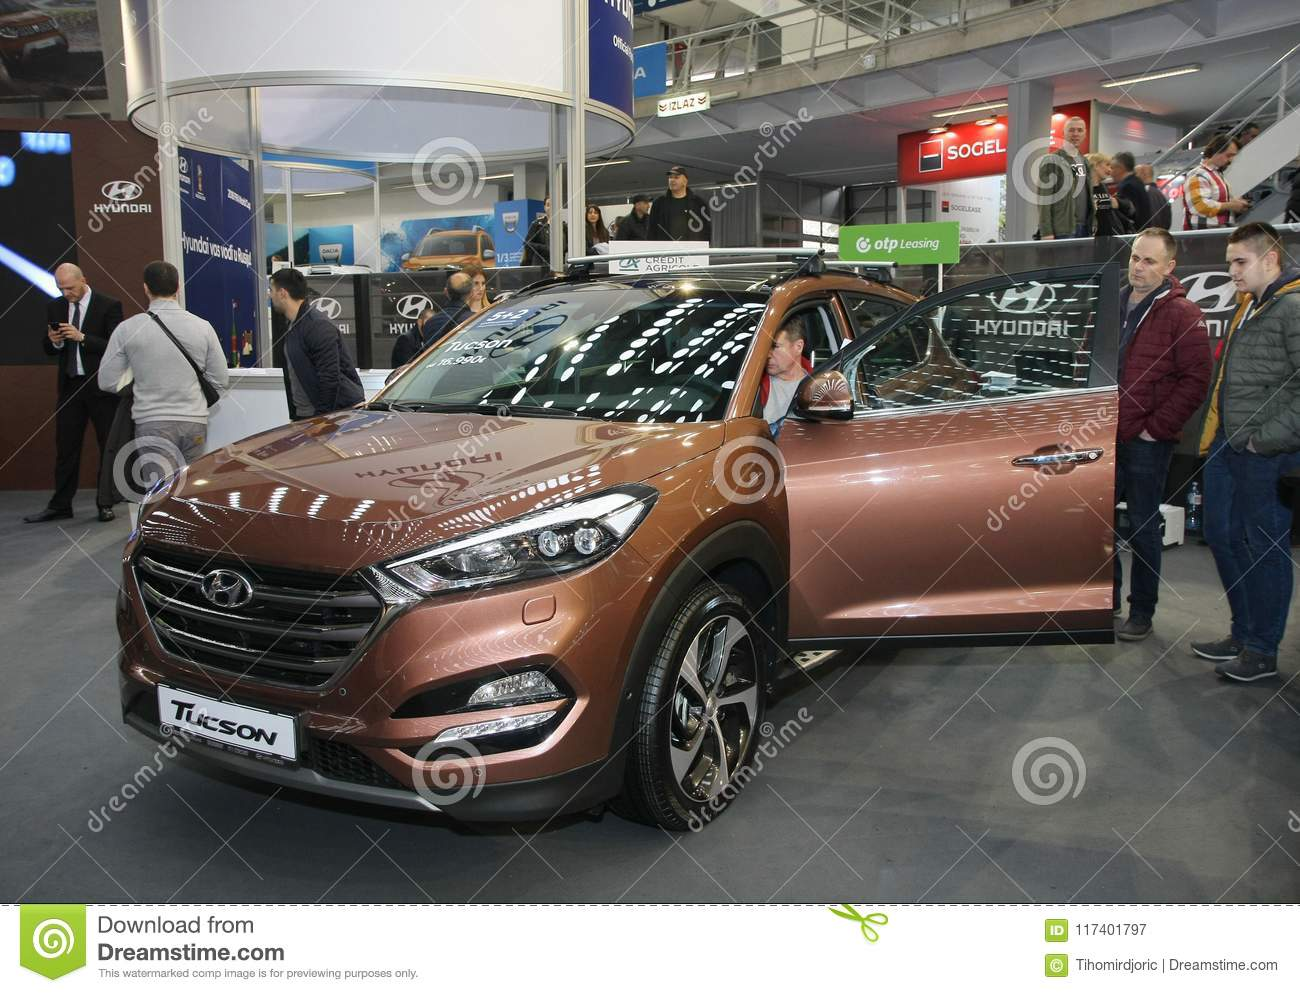 Hyundai At Belgrade Car Show Editorial Photography Image Of - Car show tucson today